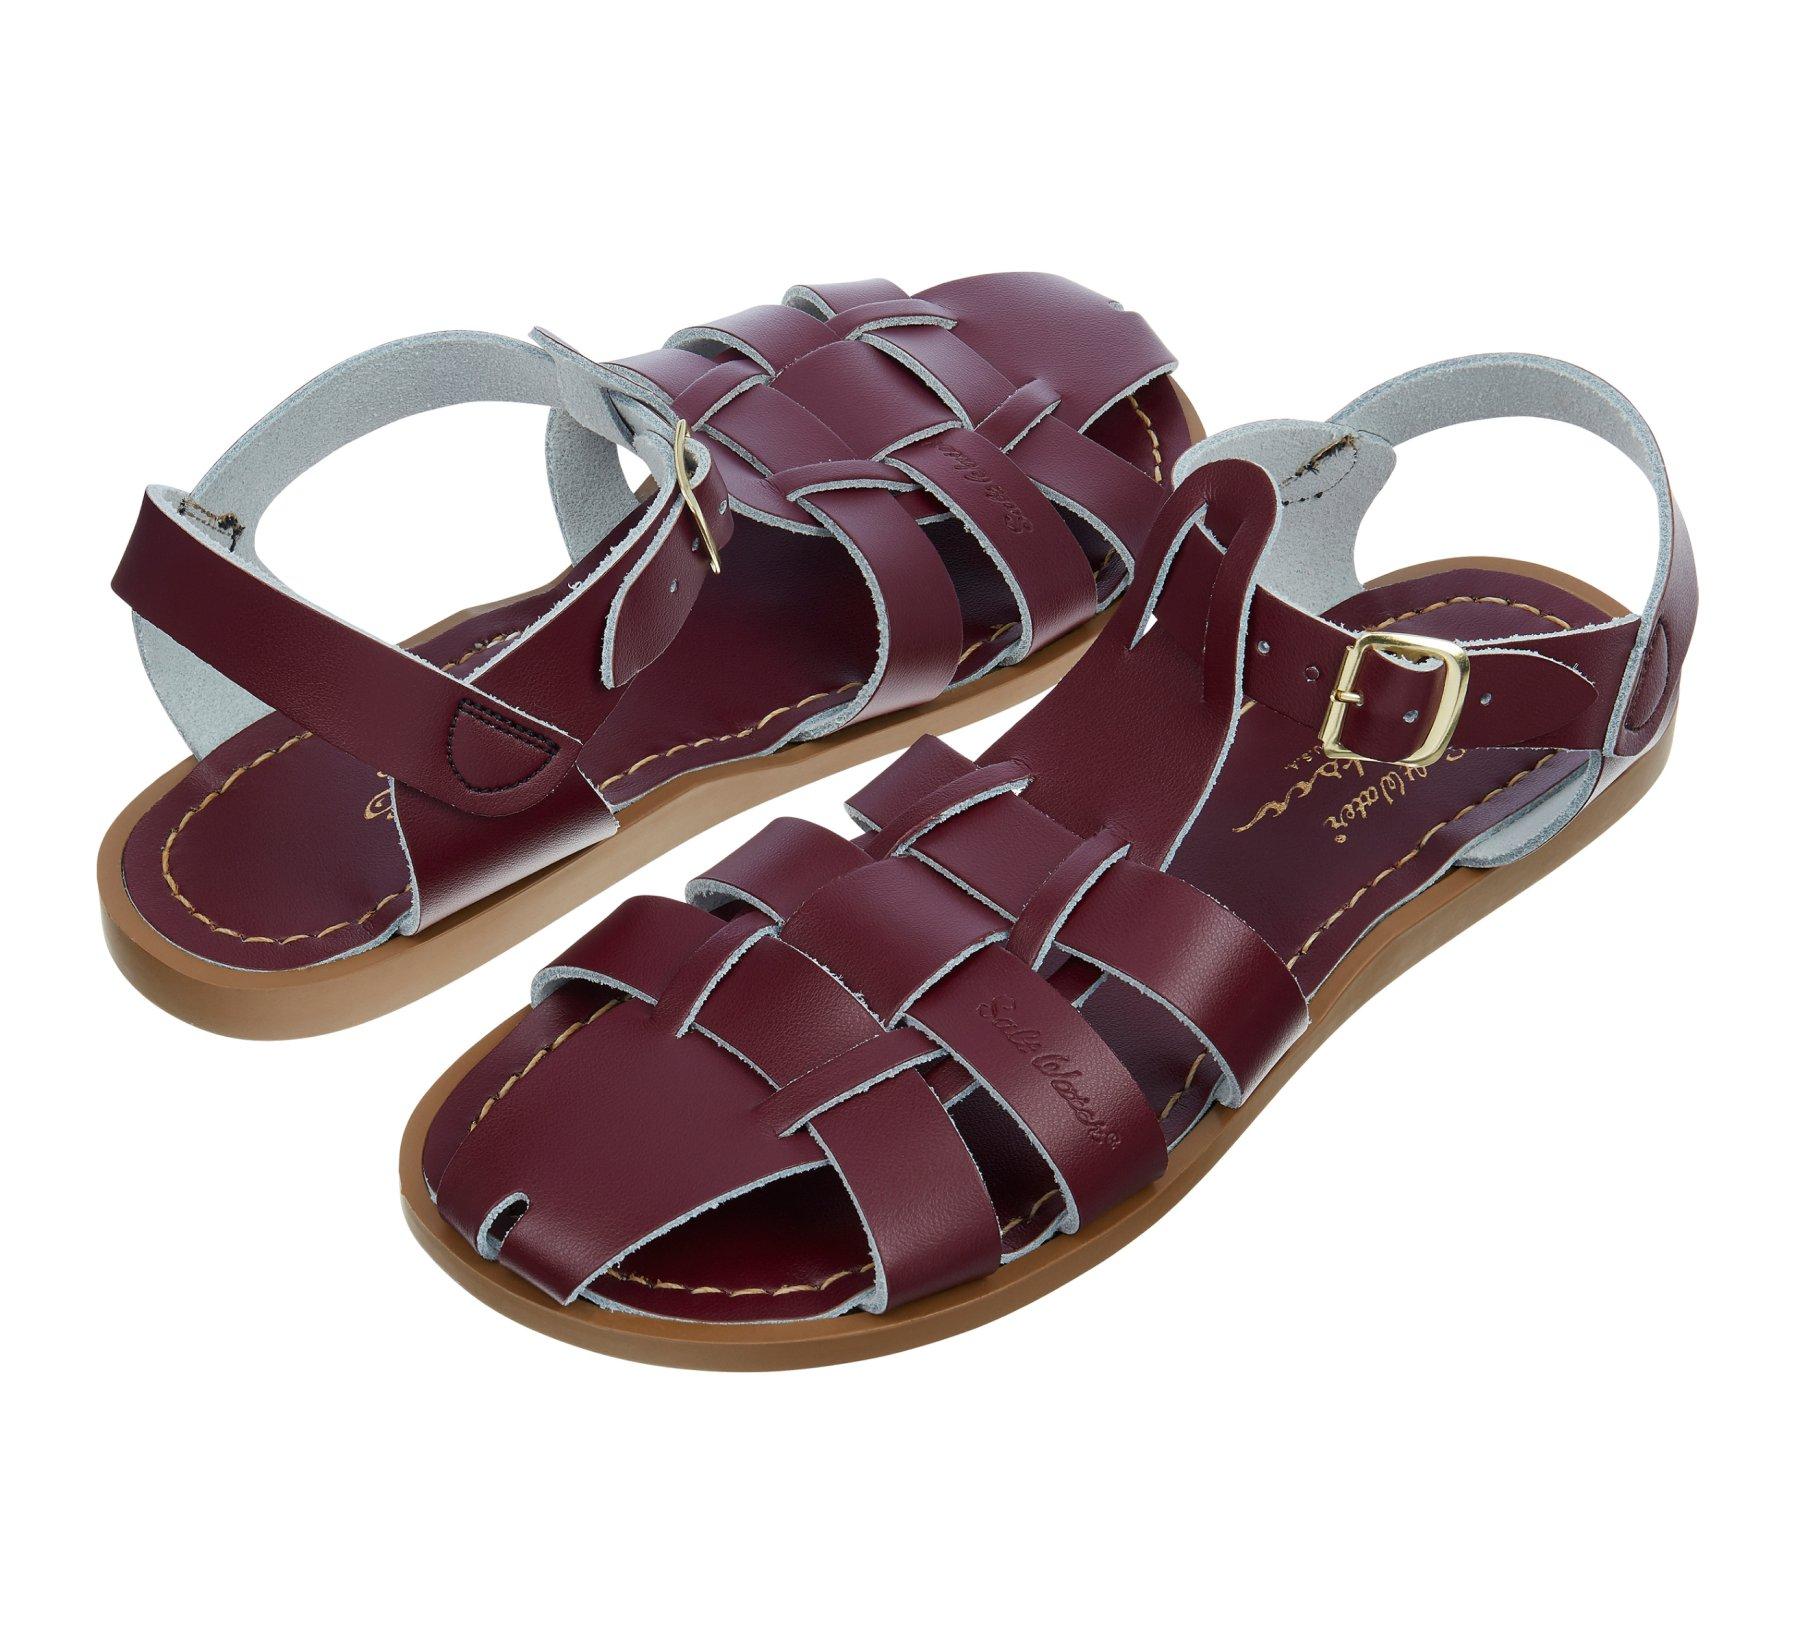 Shark Original Bordeaux - Salt Water Sandals